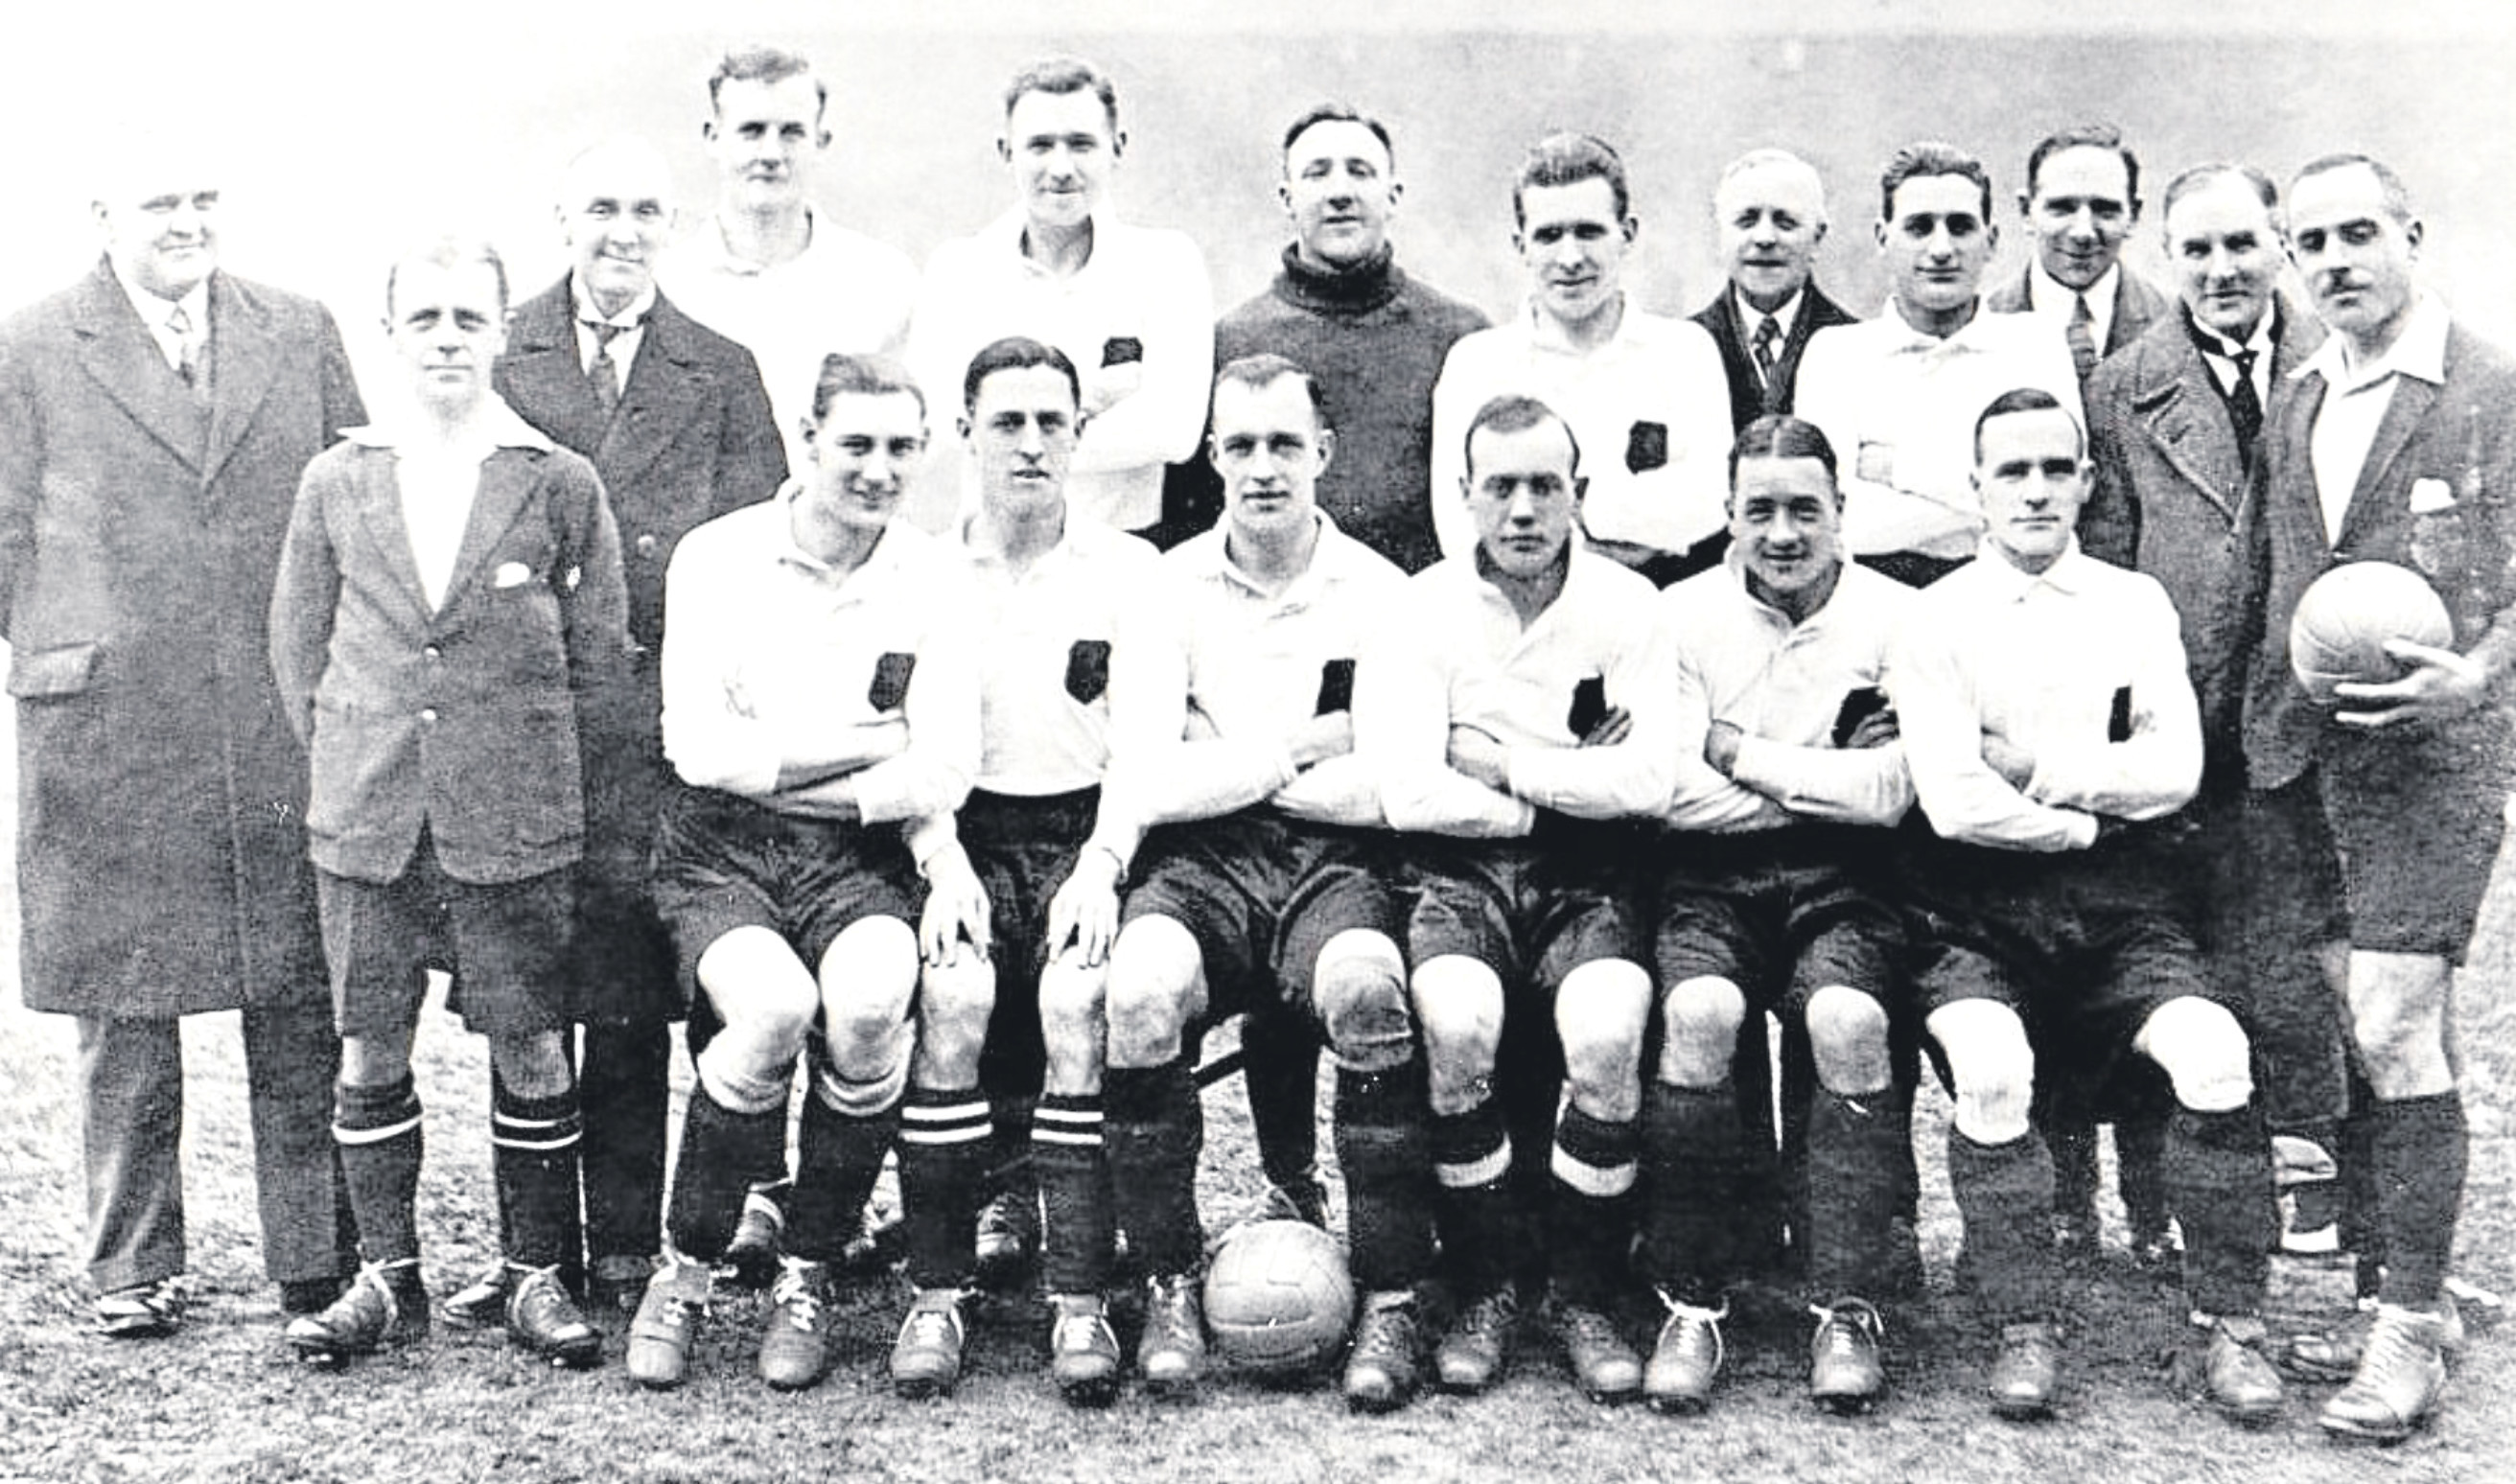 Goalkeeper Bob Middleton, of Cowdenbeath, is pictured with the Scotland team which beat Ireland in 1930